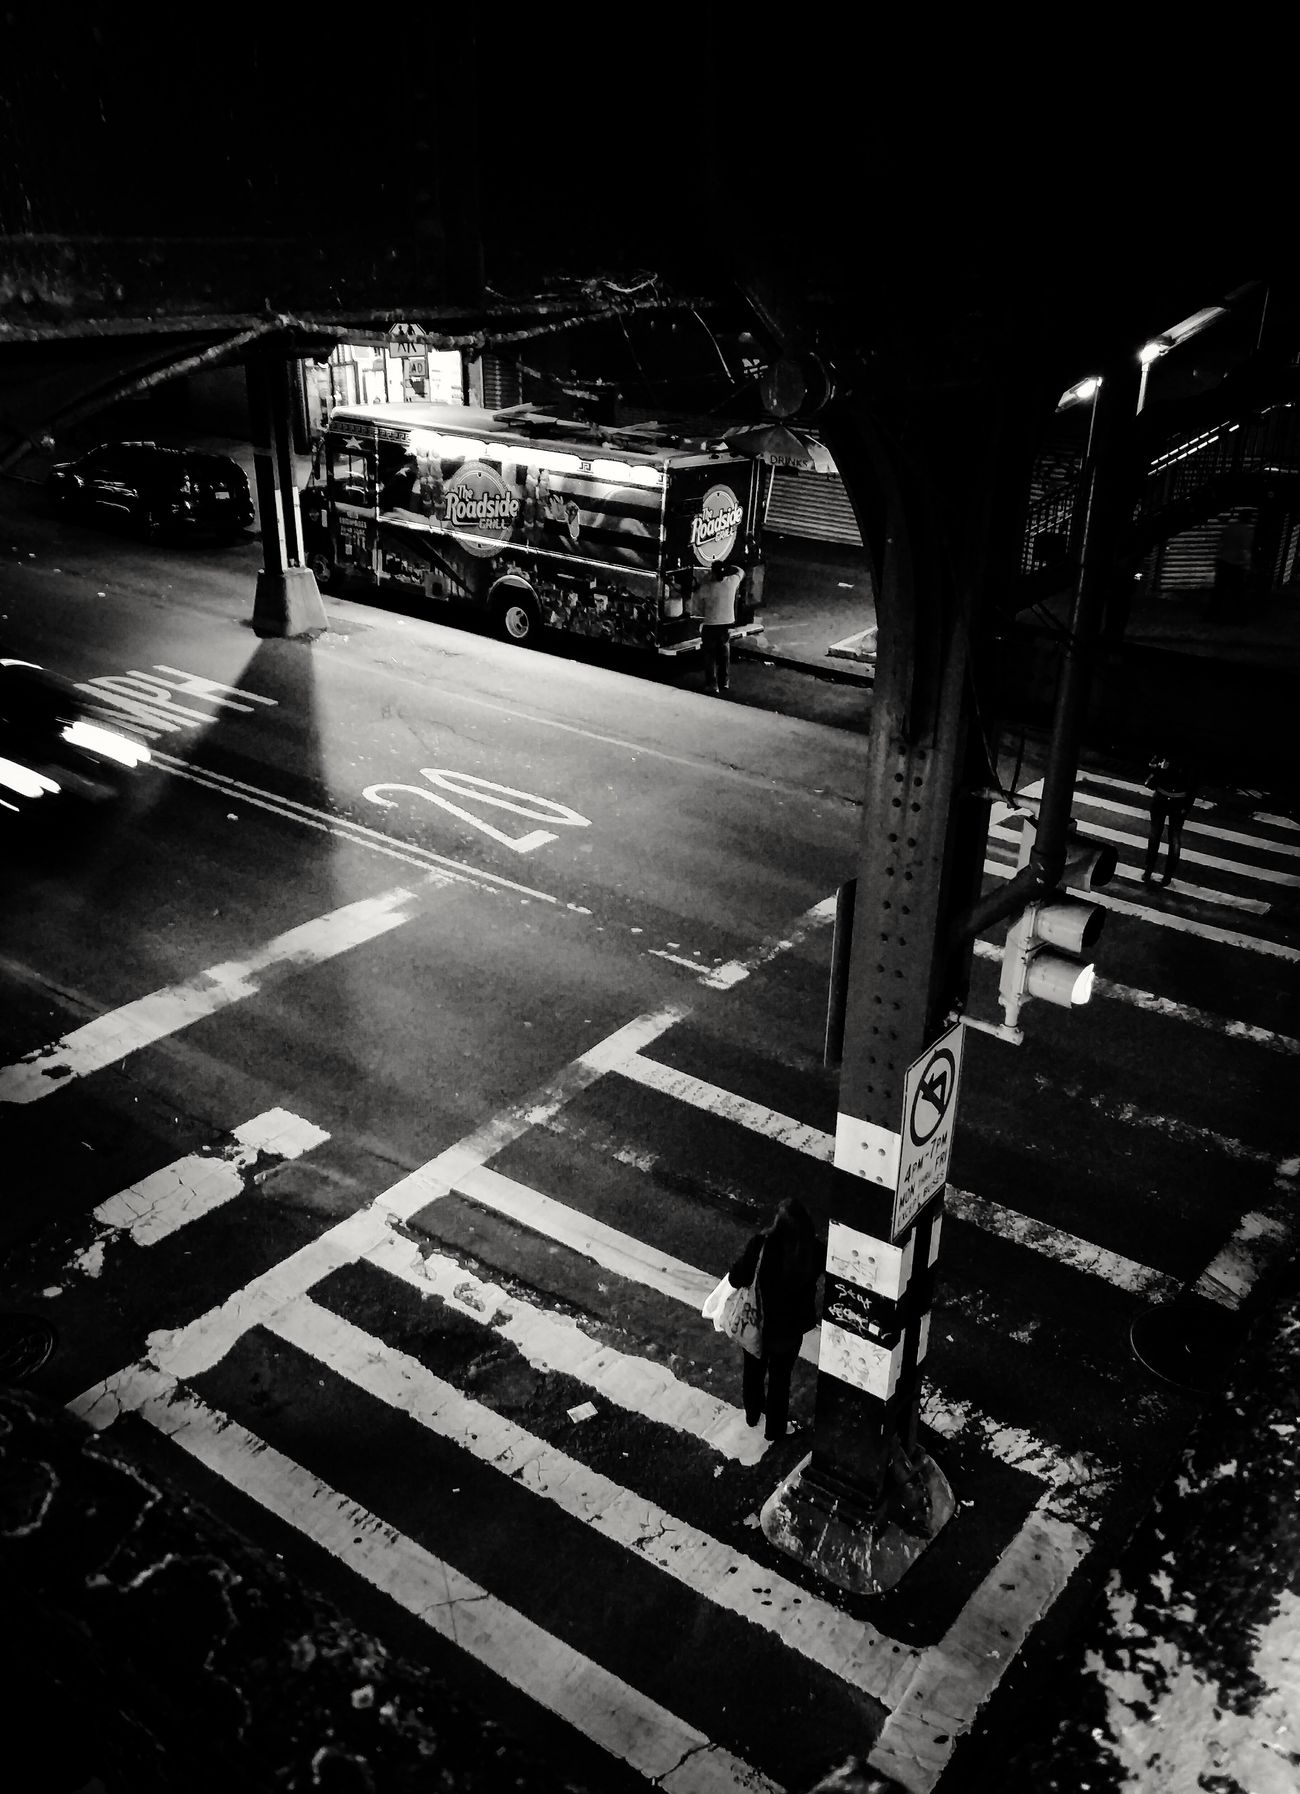 Road City City Street Underthebridge NYC Astoria Astoria, Queens N Train Blackandwhite Truck Food Truck